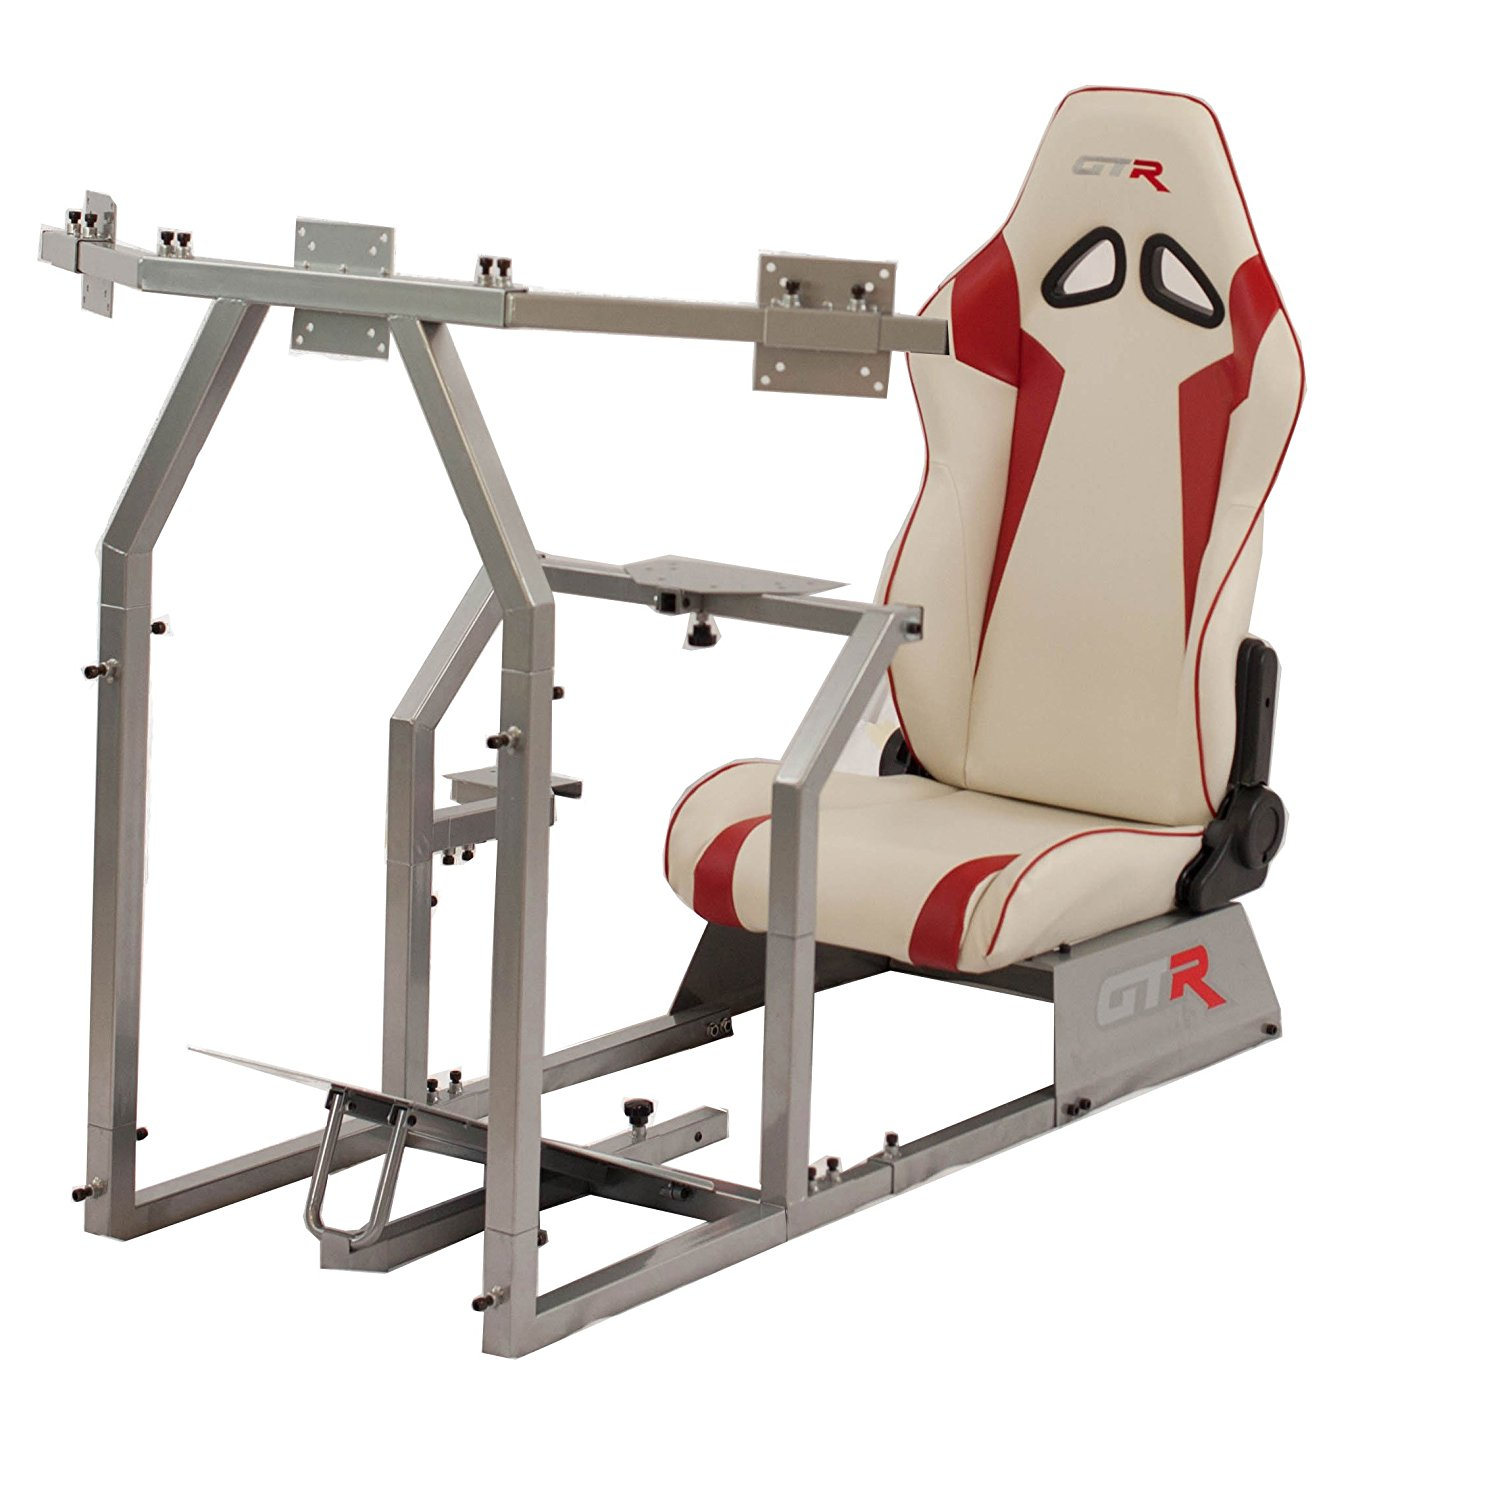 GTR Racing Simulator GTAF-S-S105LWHTRD - GTA-F Model (Silver) Triple or Single Monitor Stand with White/Red Adjustable Leatherette Seat, Racing Simulator Cockpit gaming chair Single Monitor Stand